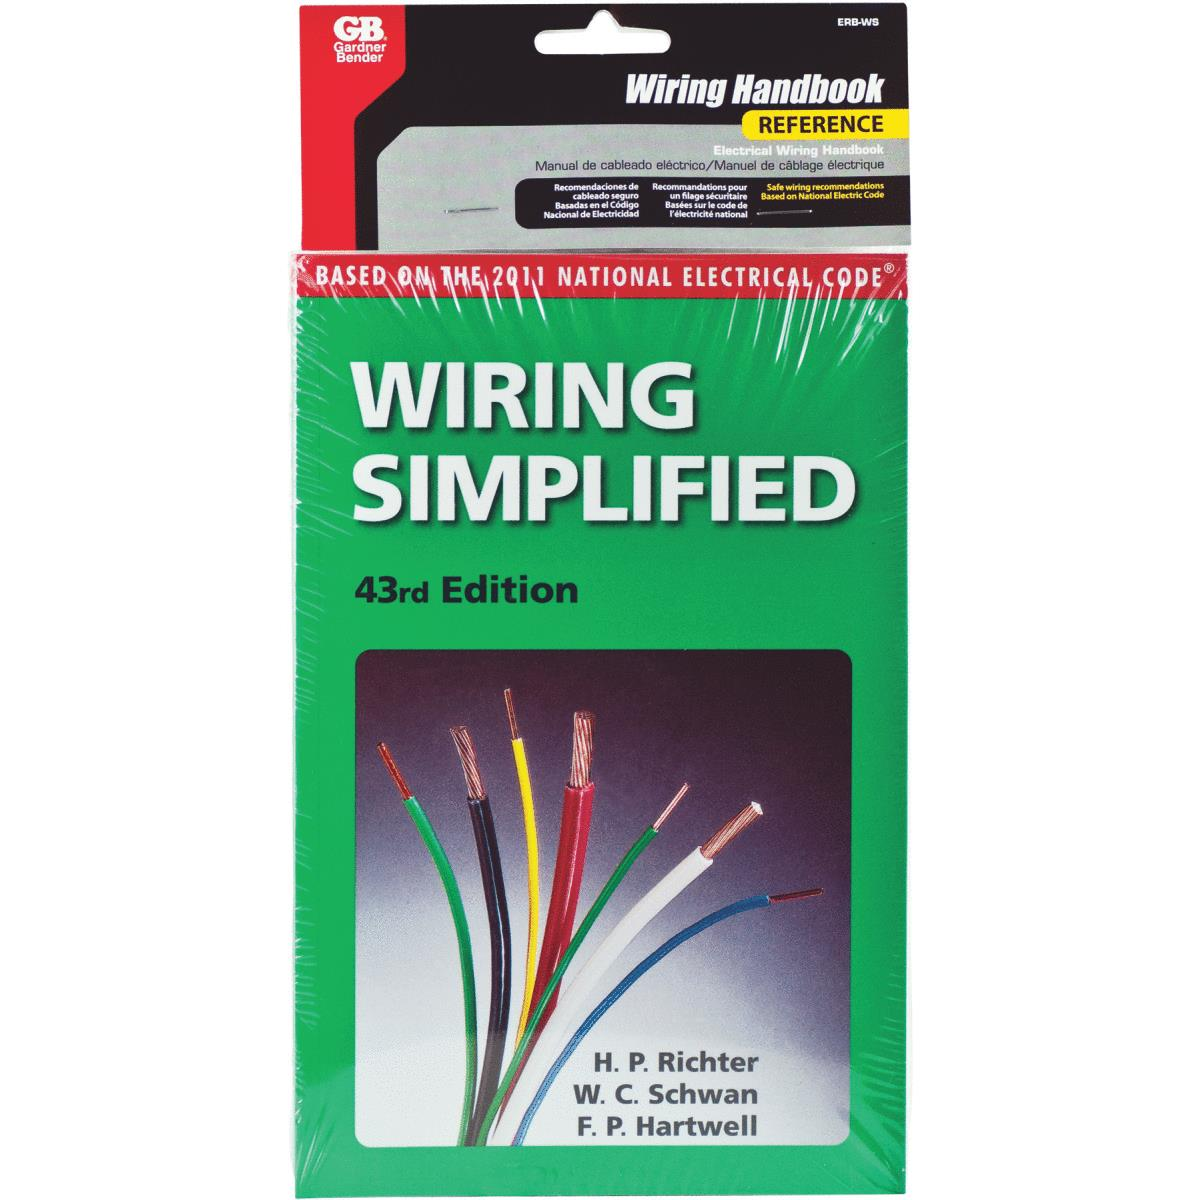 buy ugly s electrical pocket reference book rh supplyhog com home electrical wiring book free pdf electrical wiring book pdf